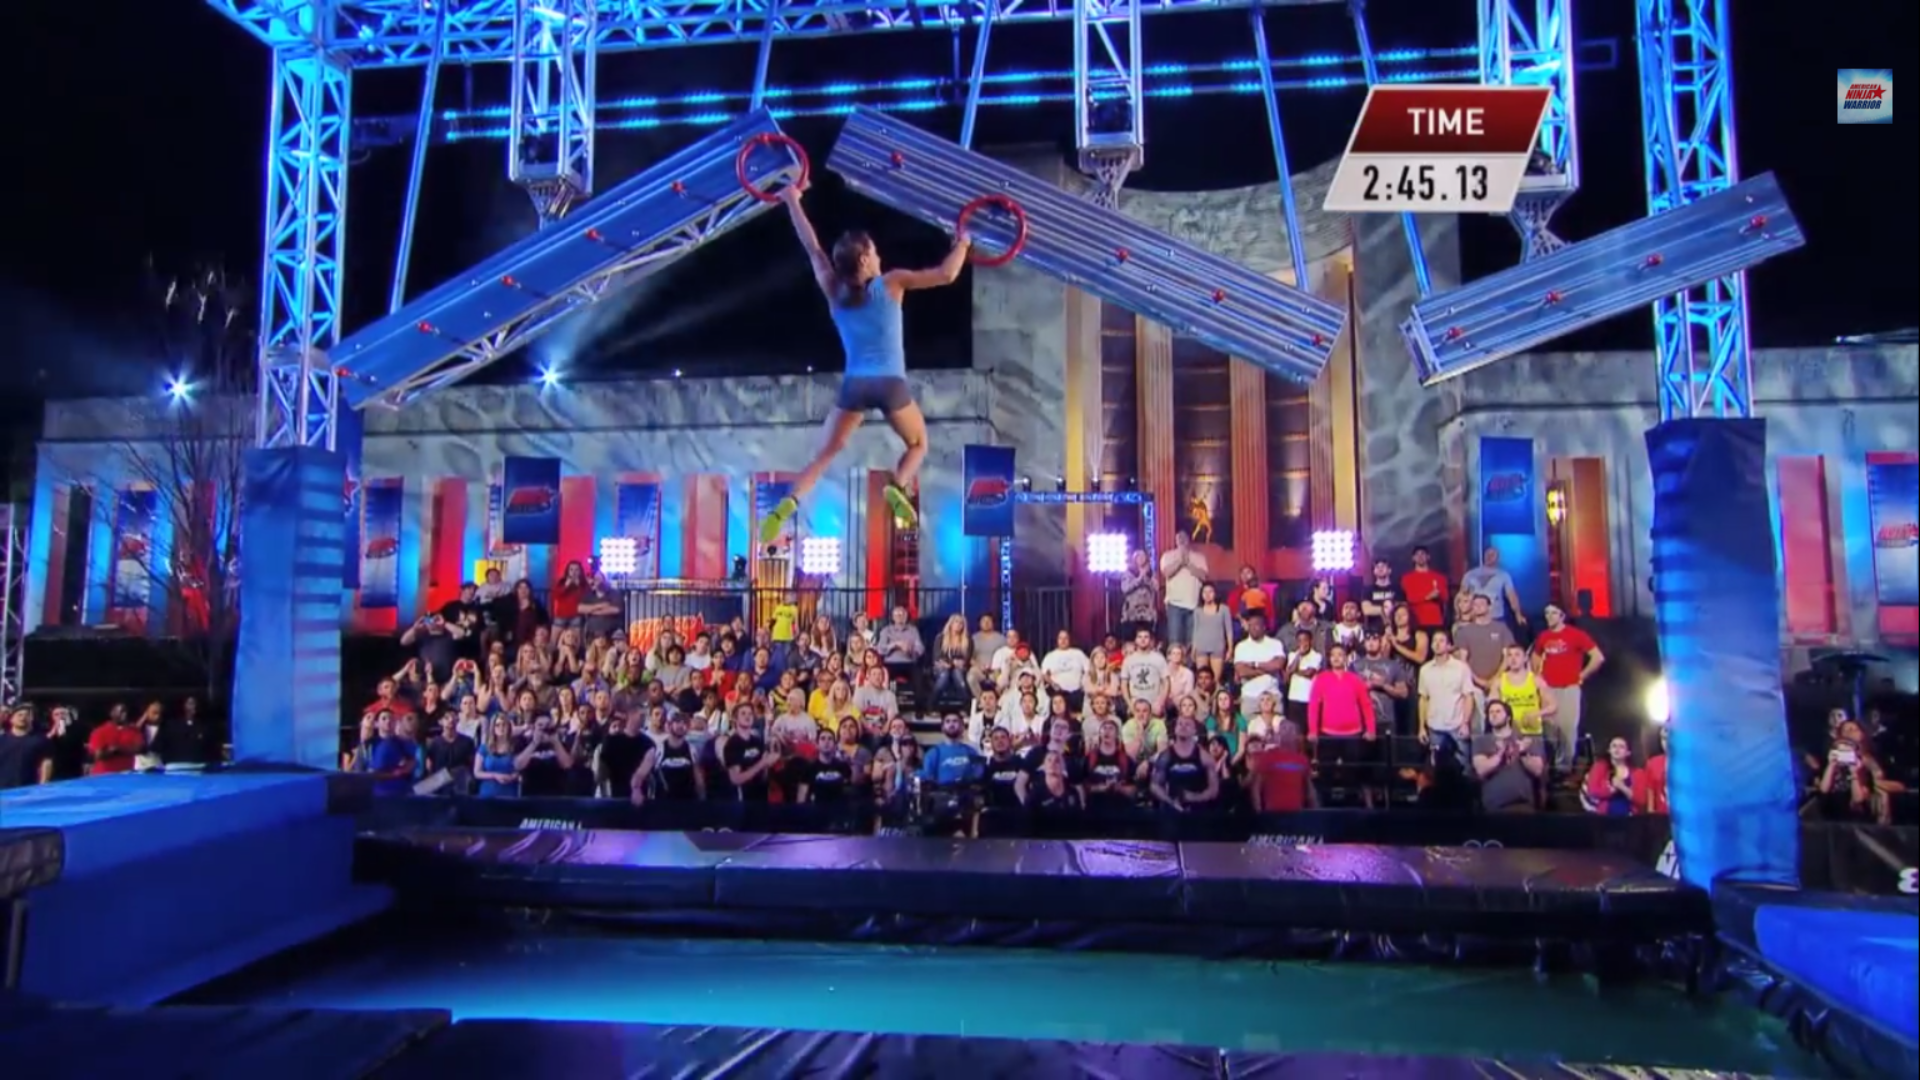 American Ninja Warrior: What No One Seems to Notice About This Historic Moment